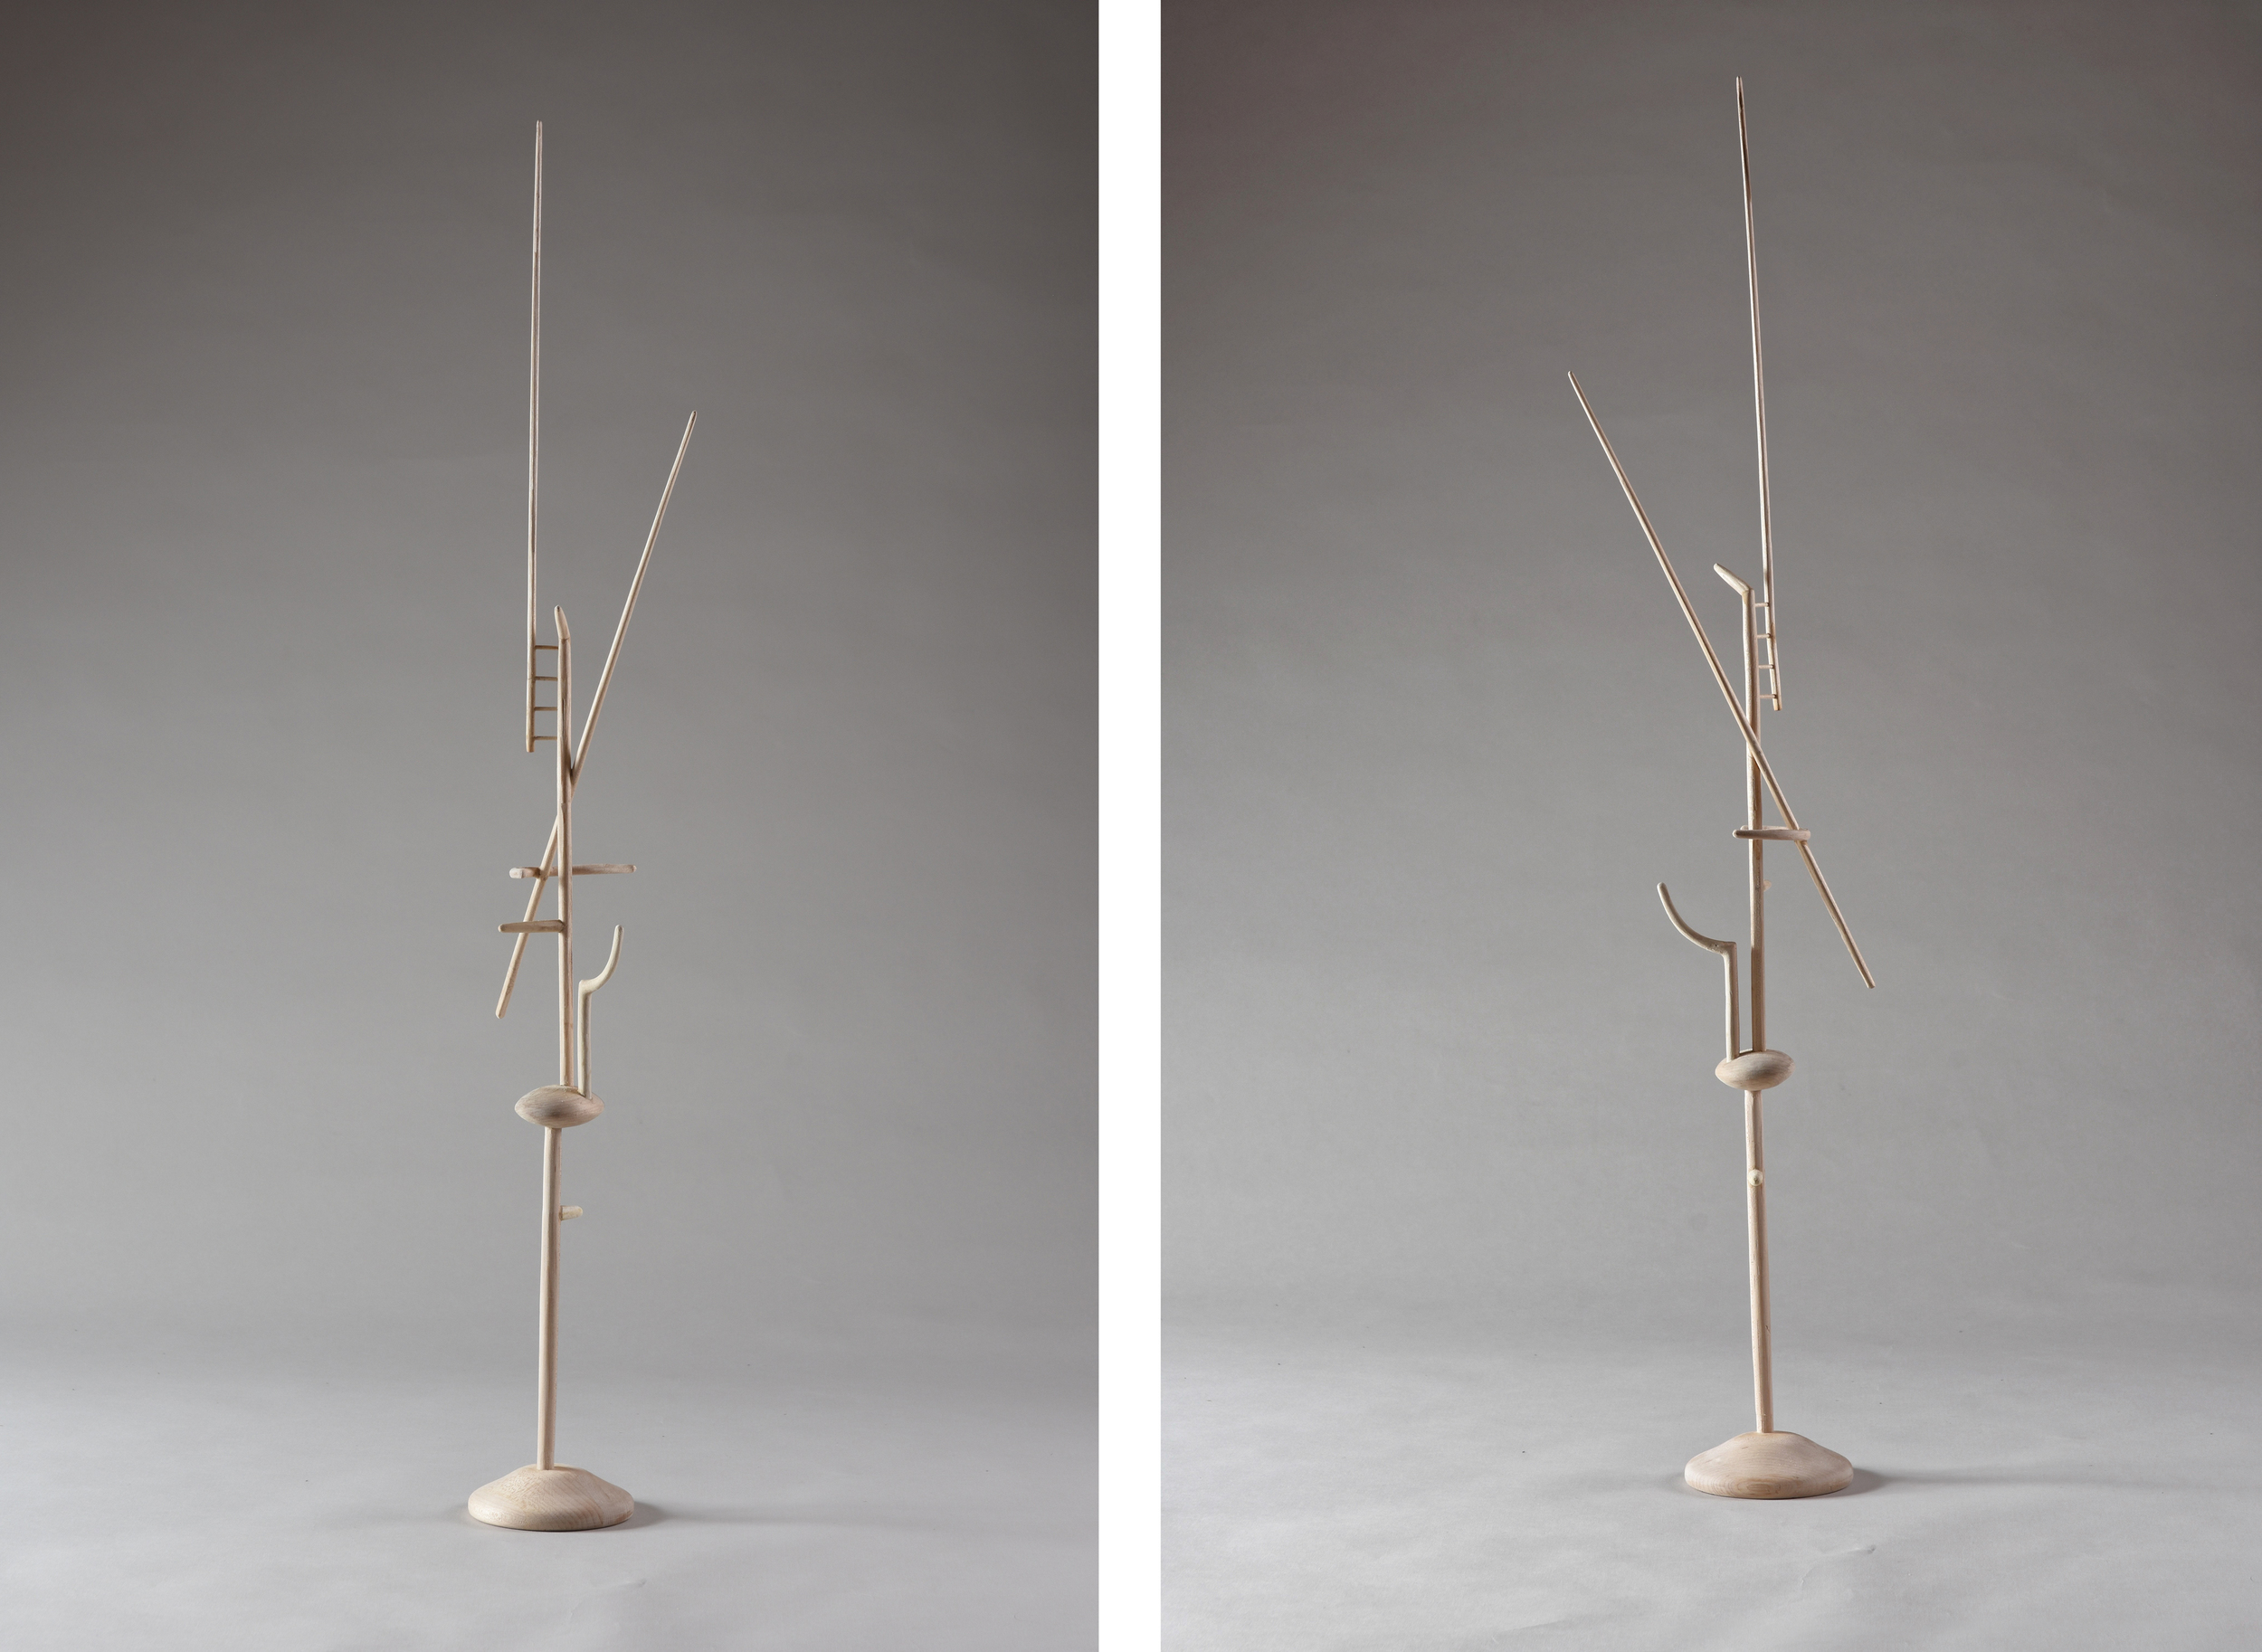 Spire,  31 1/2 inches, maple, 2015